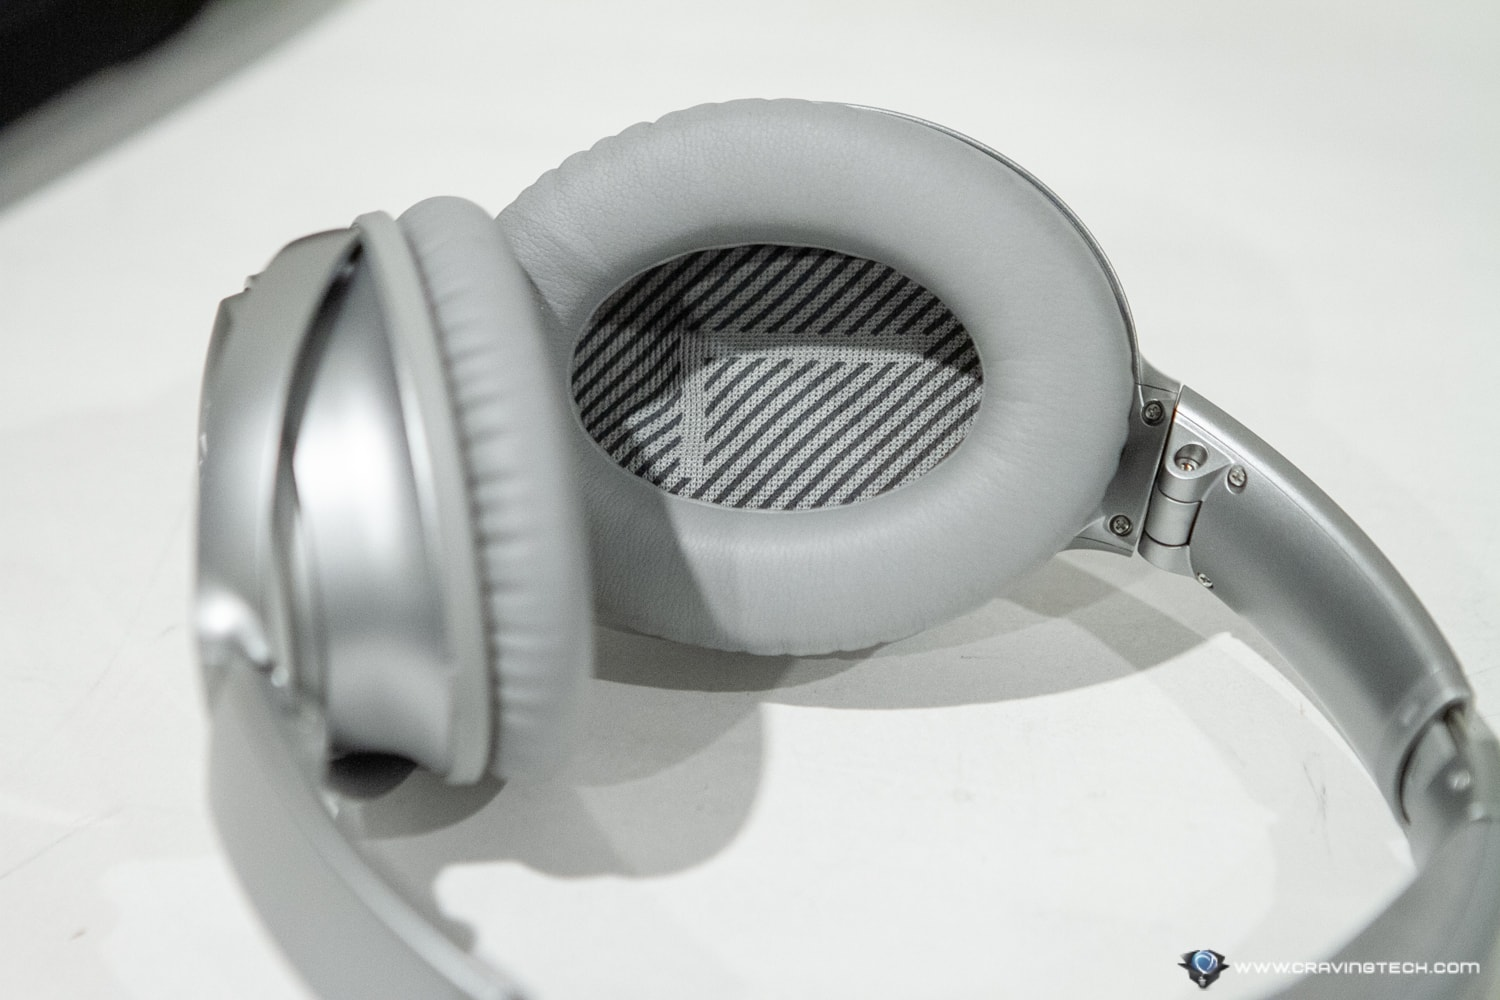 Bose QC35 II Review - Comfort